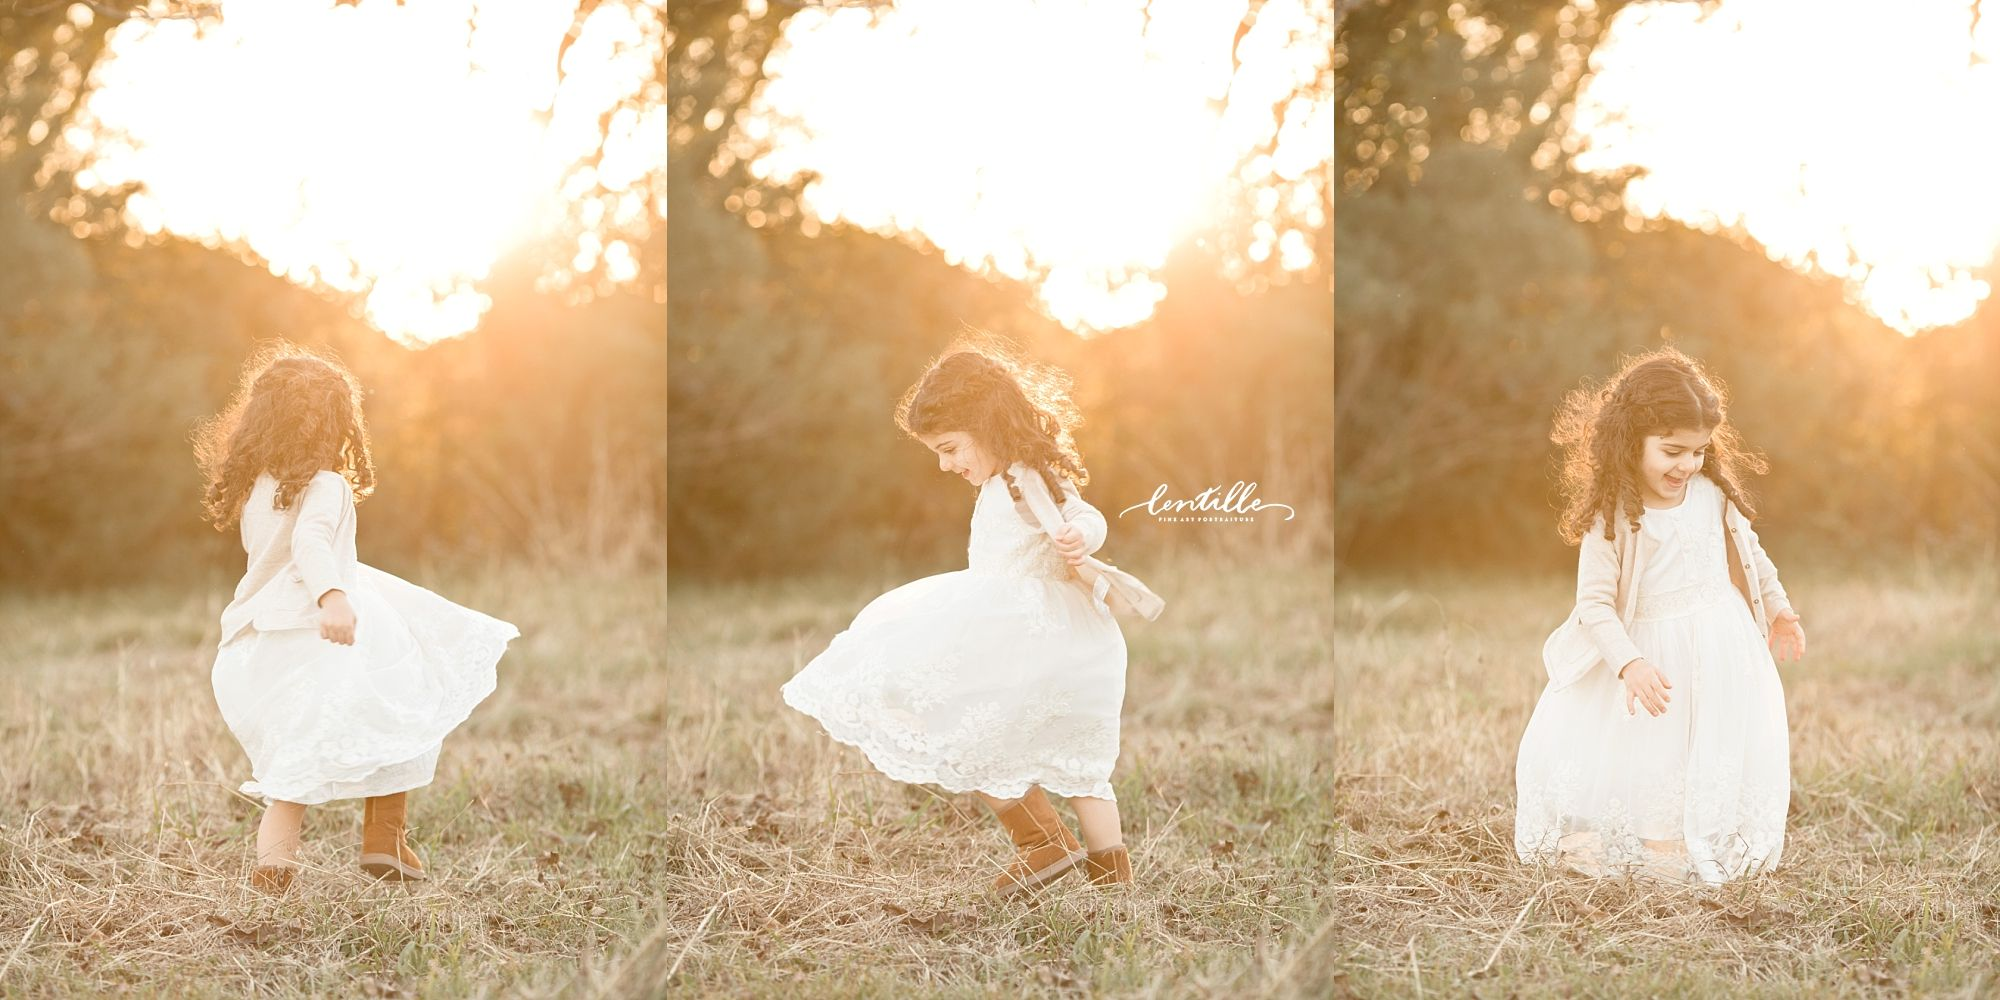 Houston family field session by Lentille Photography